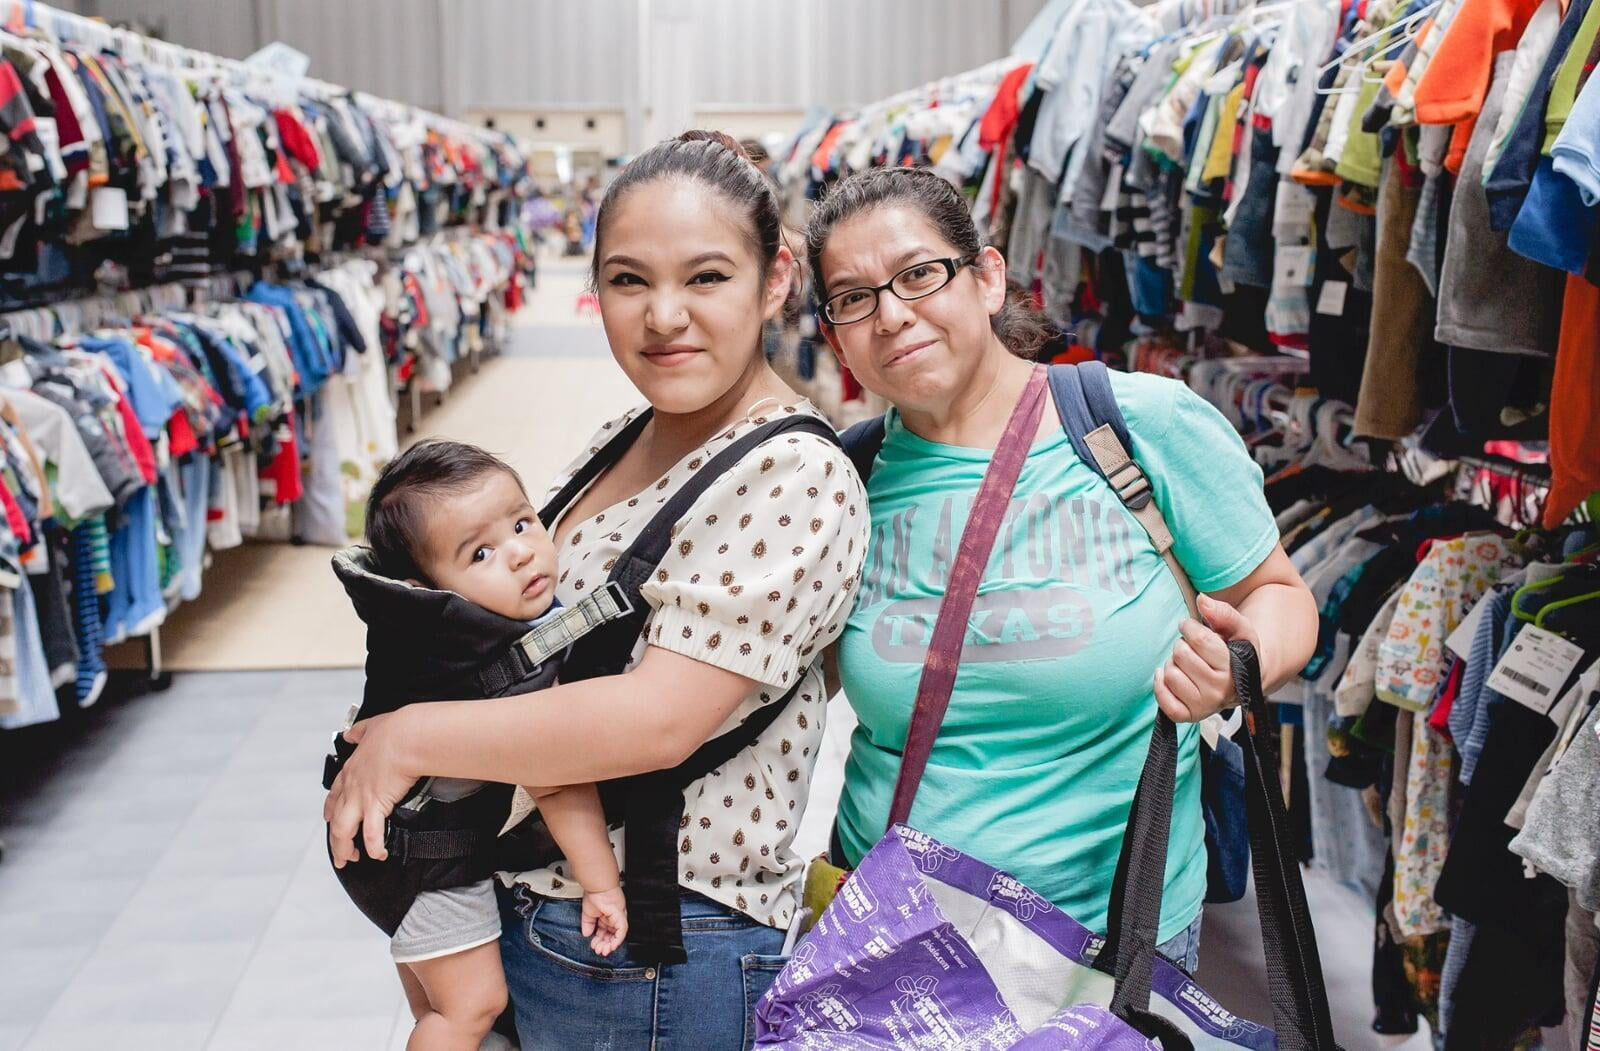 Grandmom, mom and baby in a carrier gather together and flash a smile as they shop for baby items.